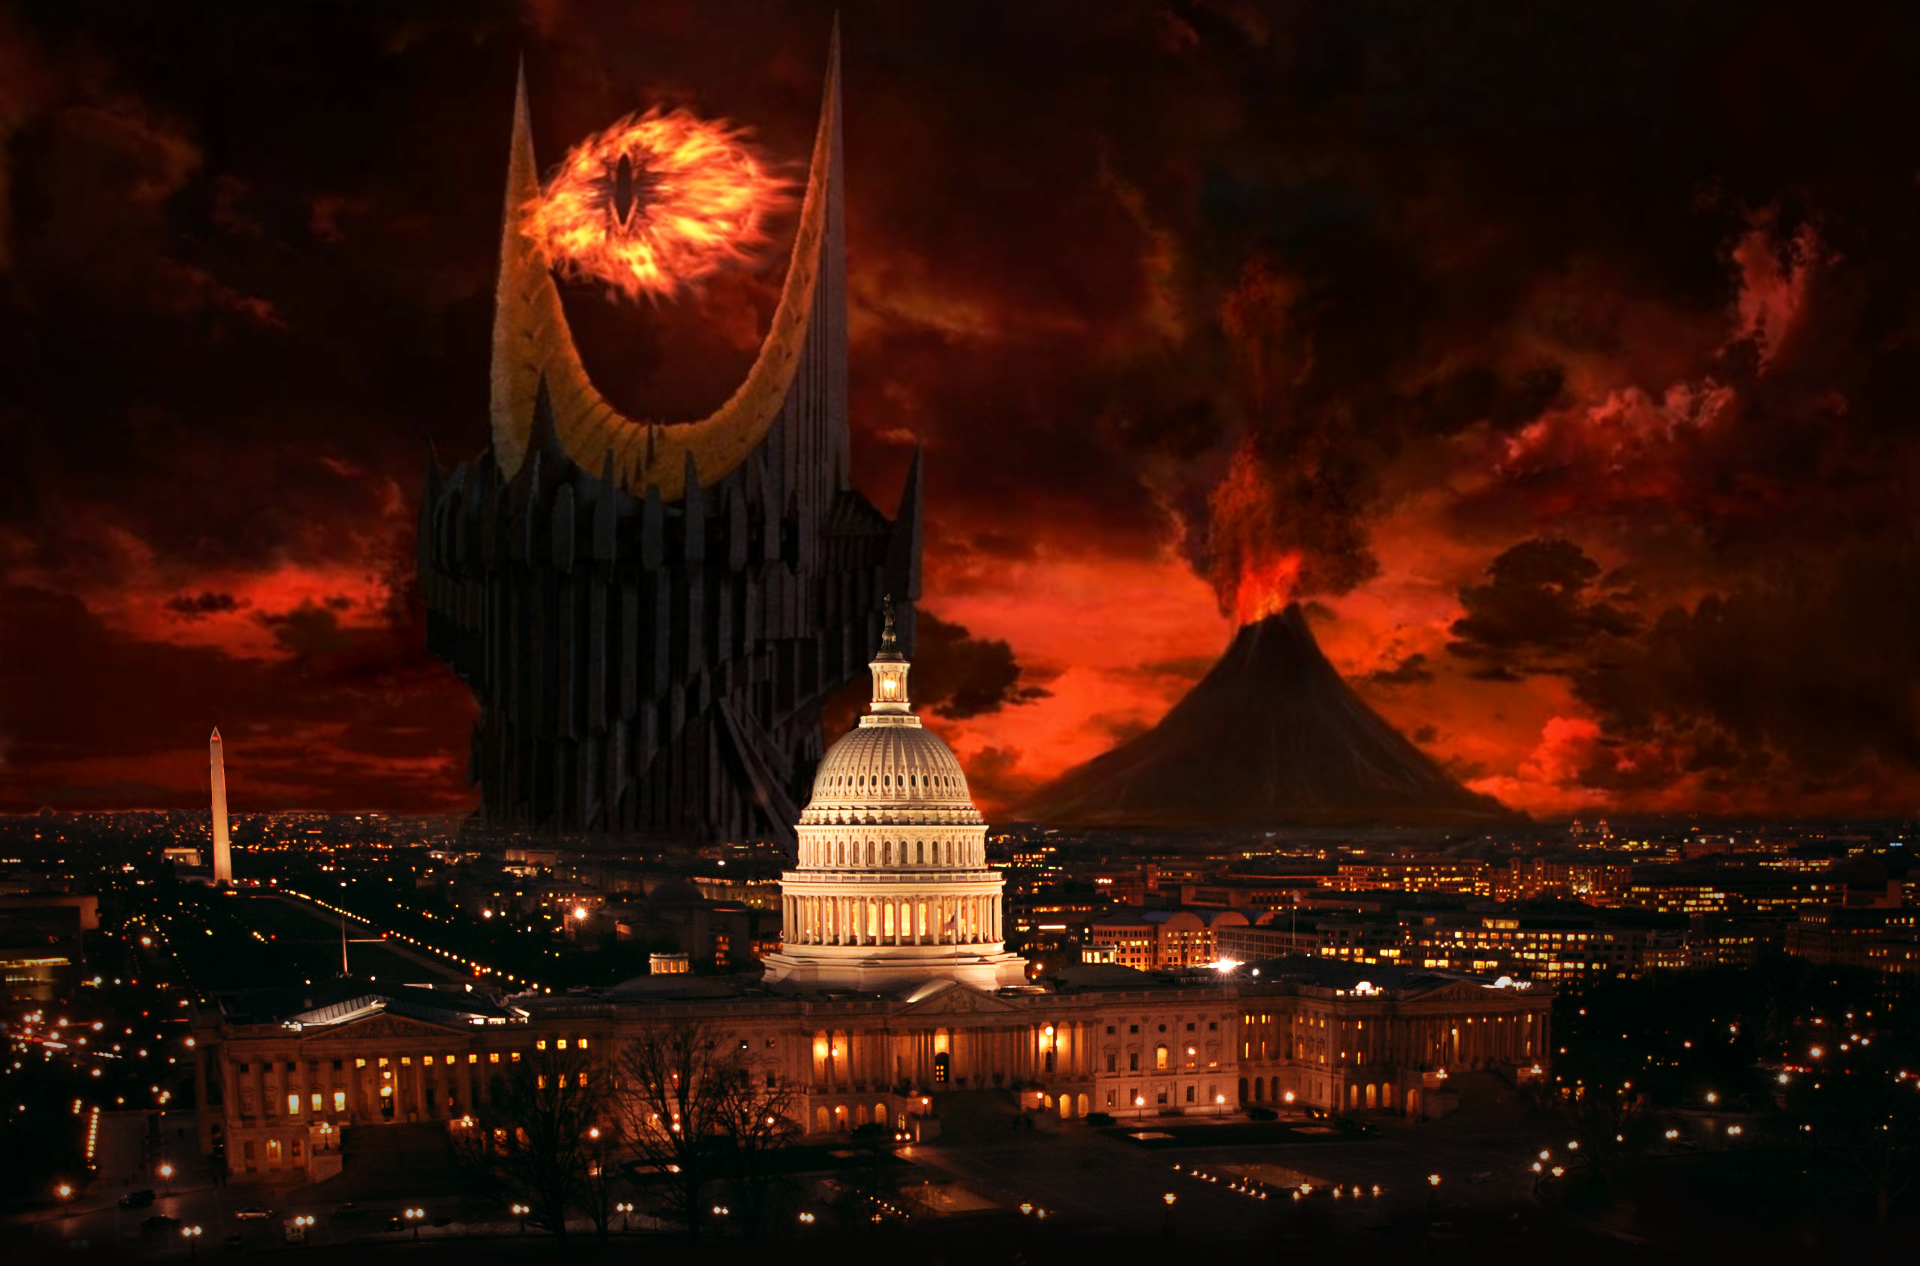 dc-eye-of-sauron.jpg